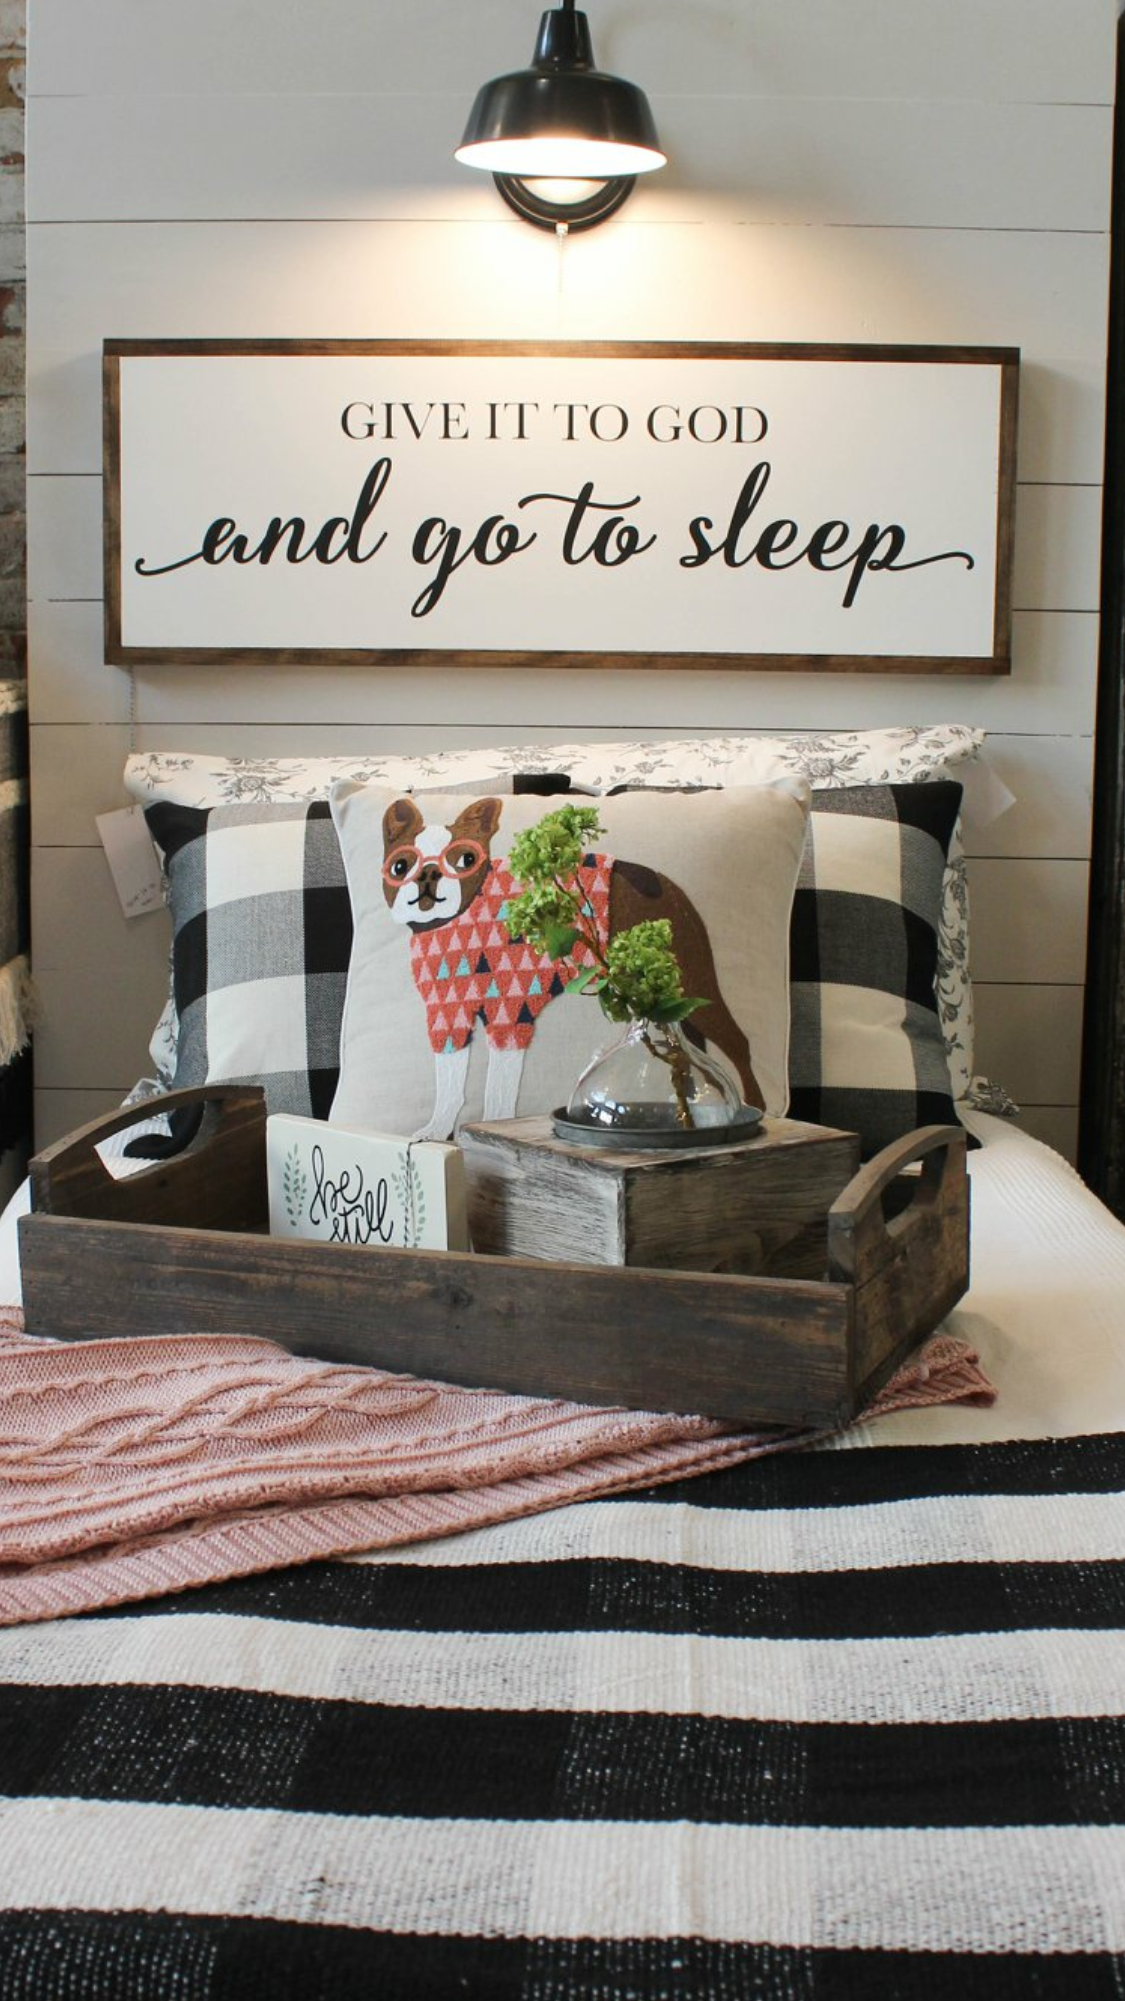 Over the bed sign with buffalo check and cute dog pillow